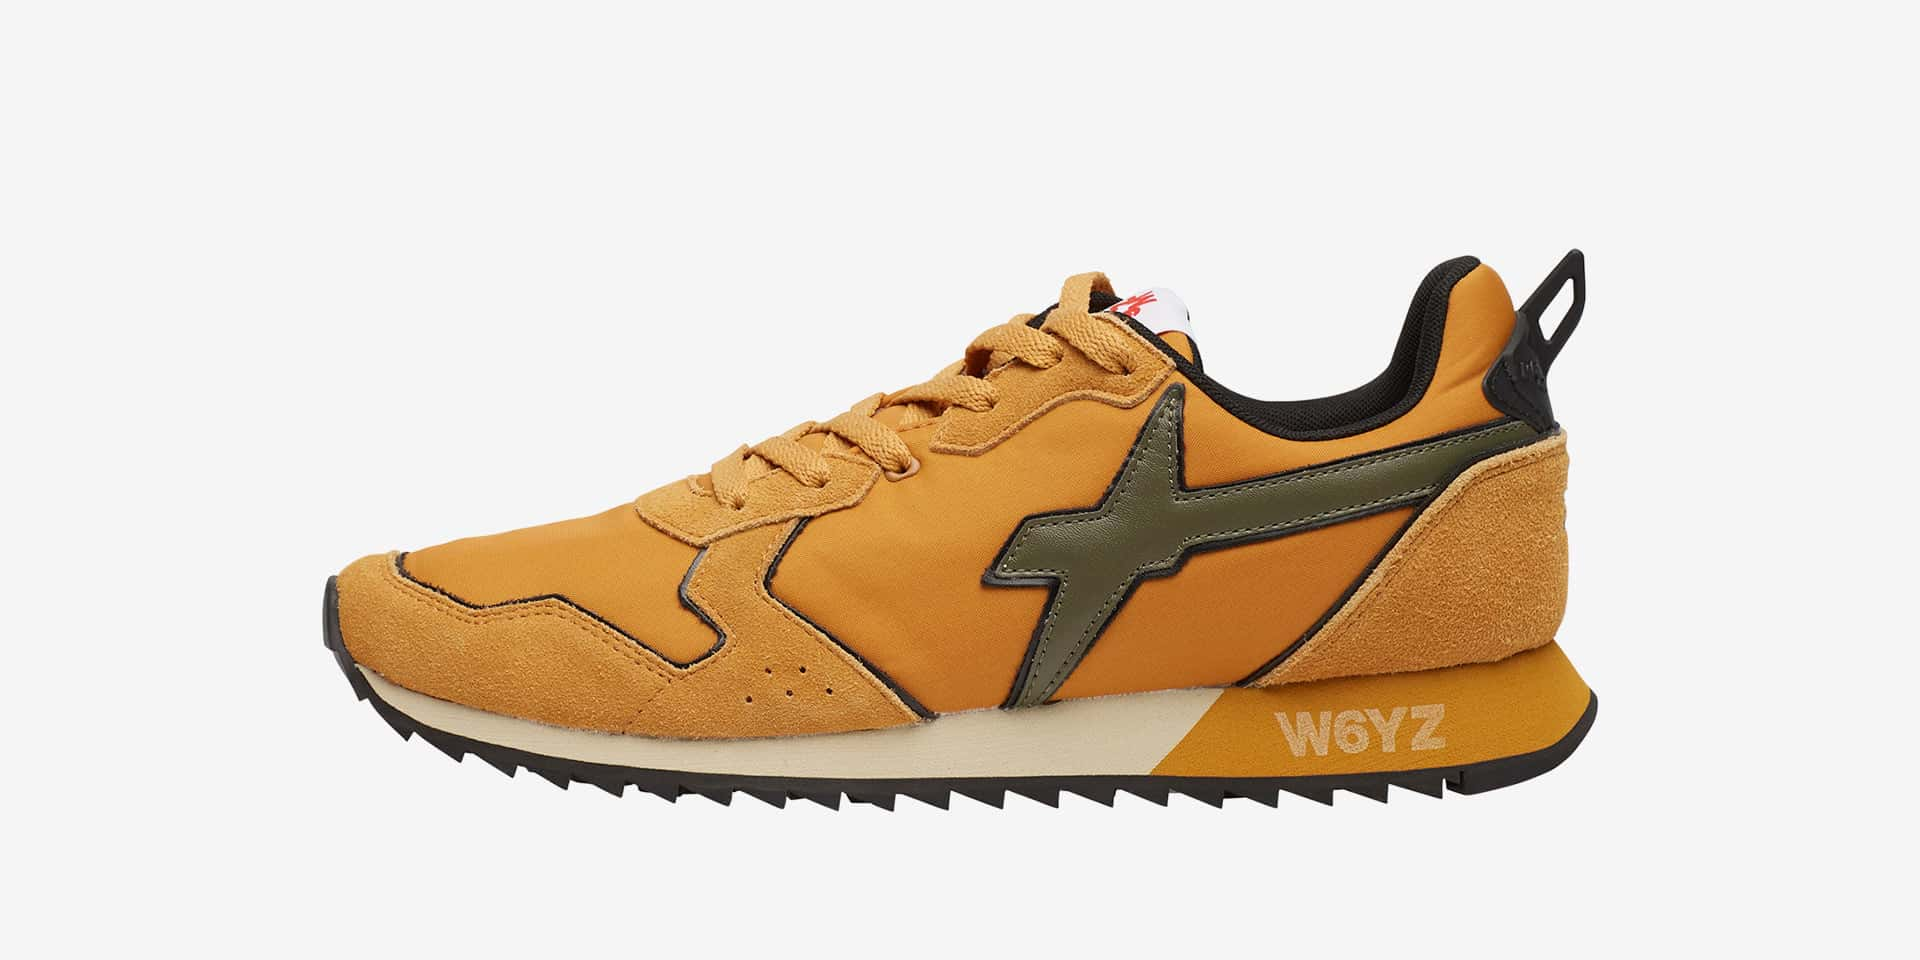 JET-M. - Leather and fabric sneakers - Tan/Military